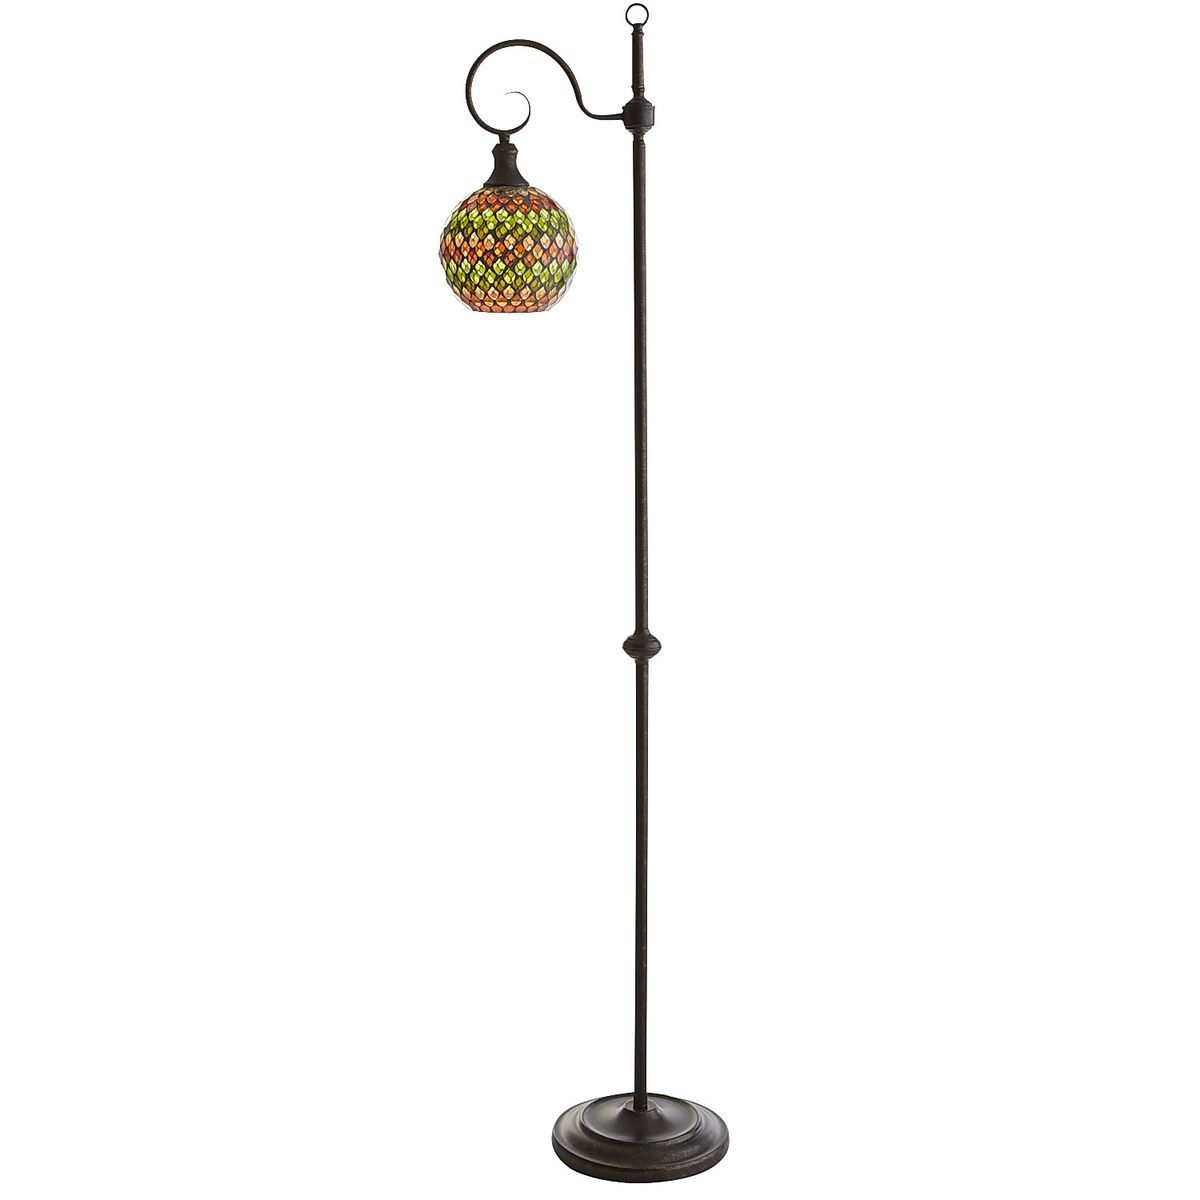 Cathedral Downbridge Floor Lamp Pier 1 Imports Stained Glass